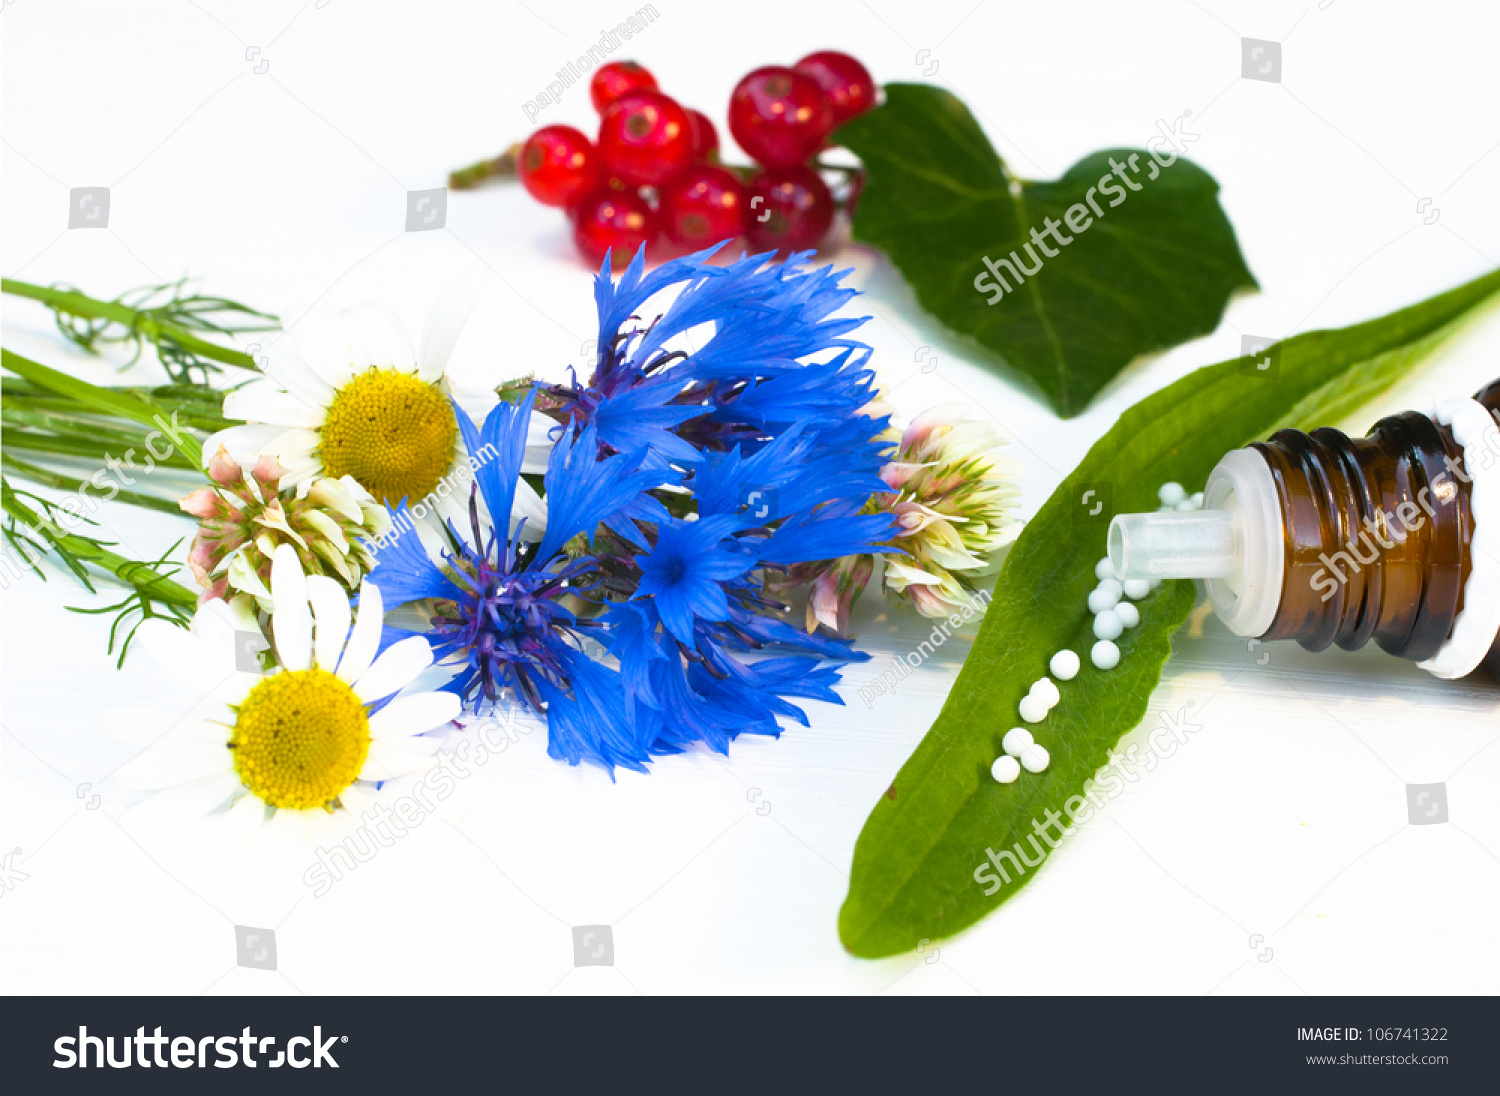 Homeopathic Homoeopathic Medicine Stock Photo (Edit Now